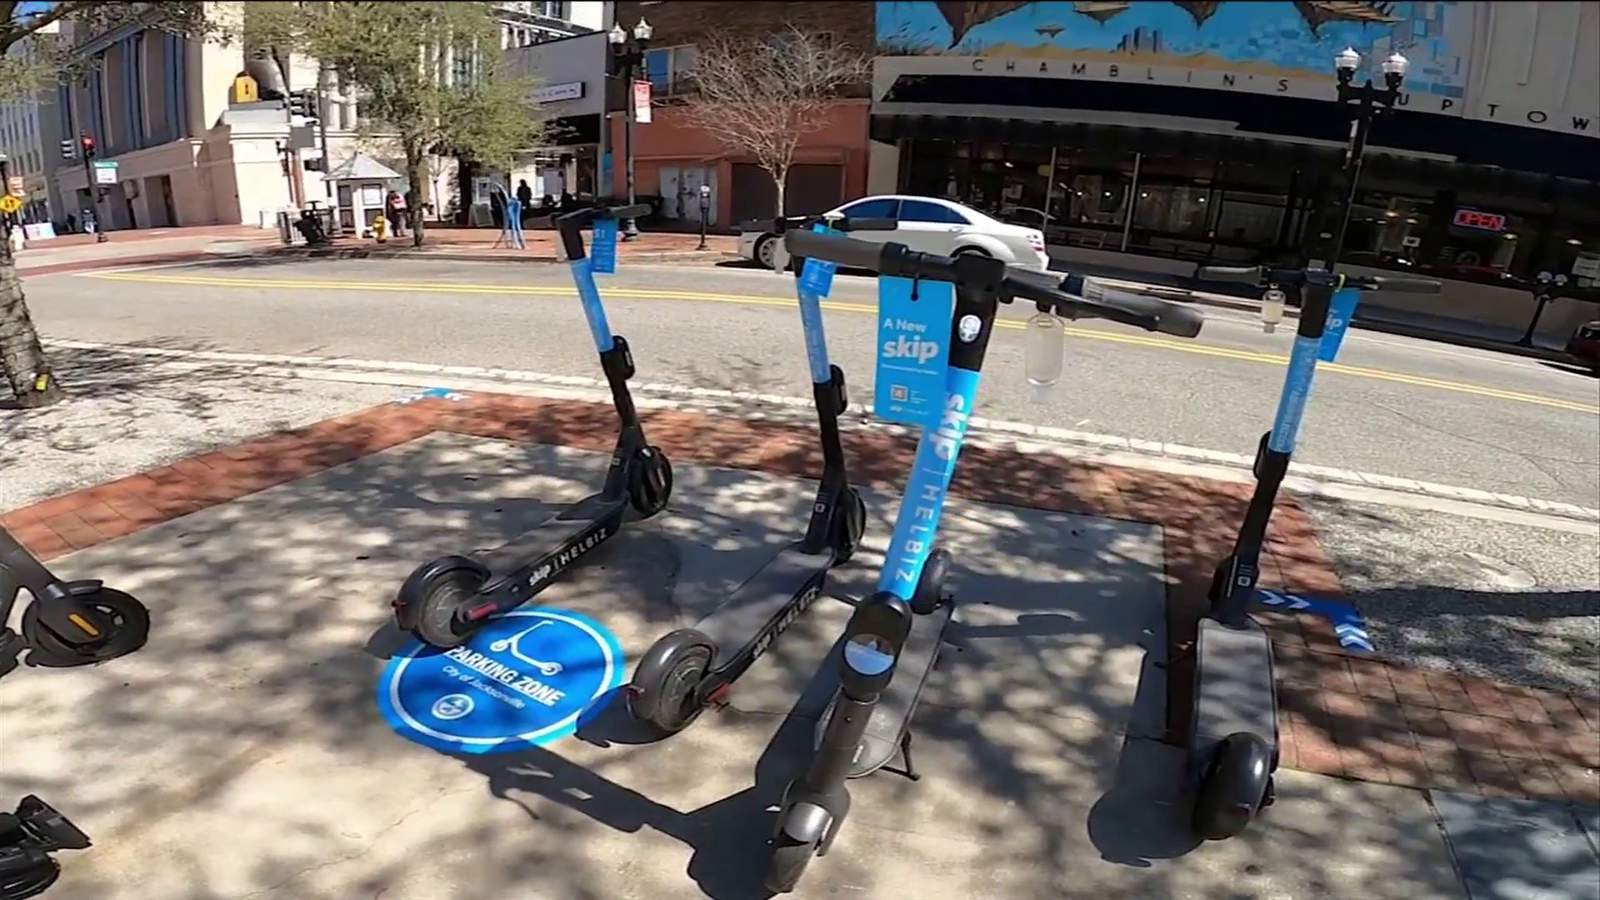 Creating buzz: Electric scooters, bikes rev up in Downtown Jacksonville - WJXT News4JAX